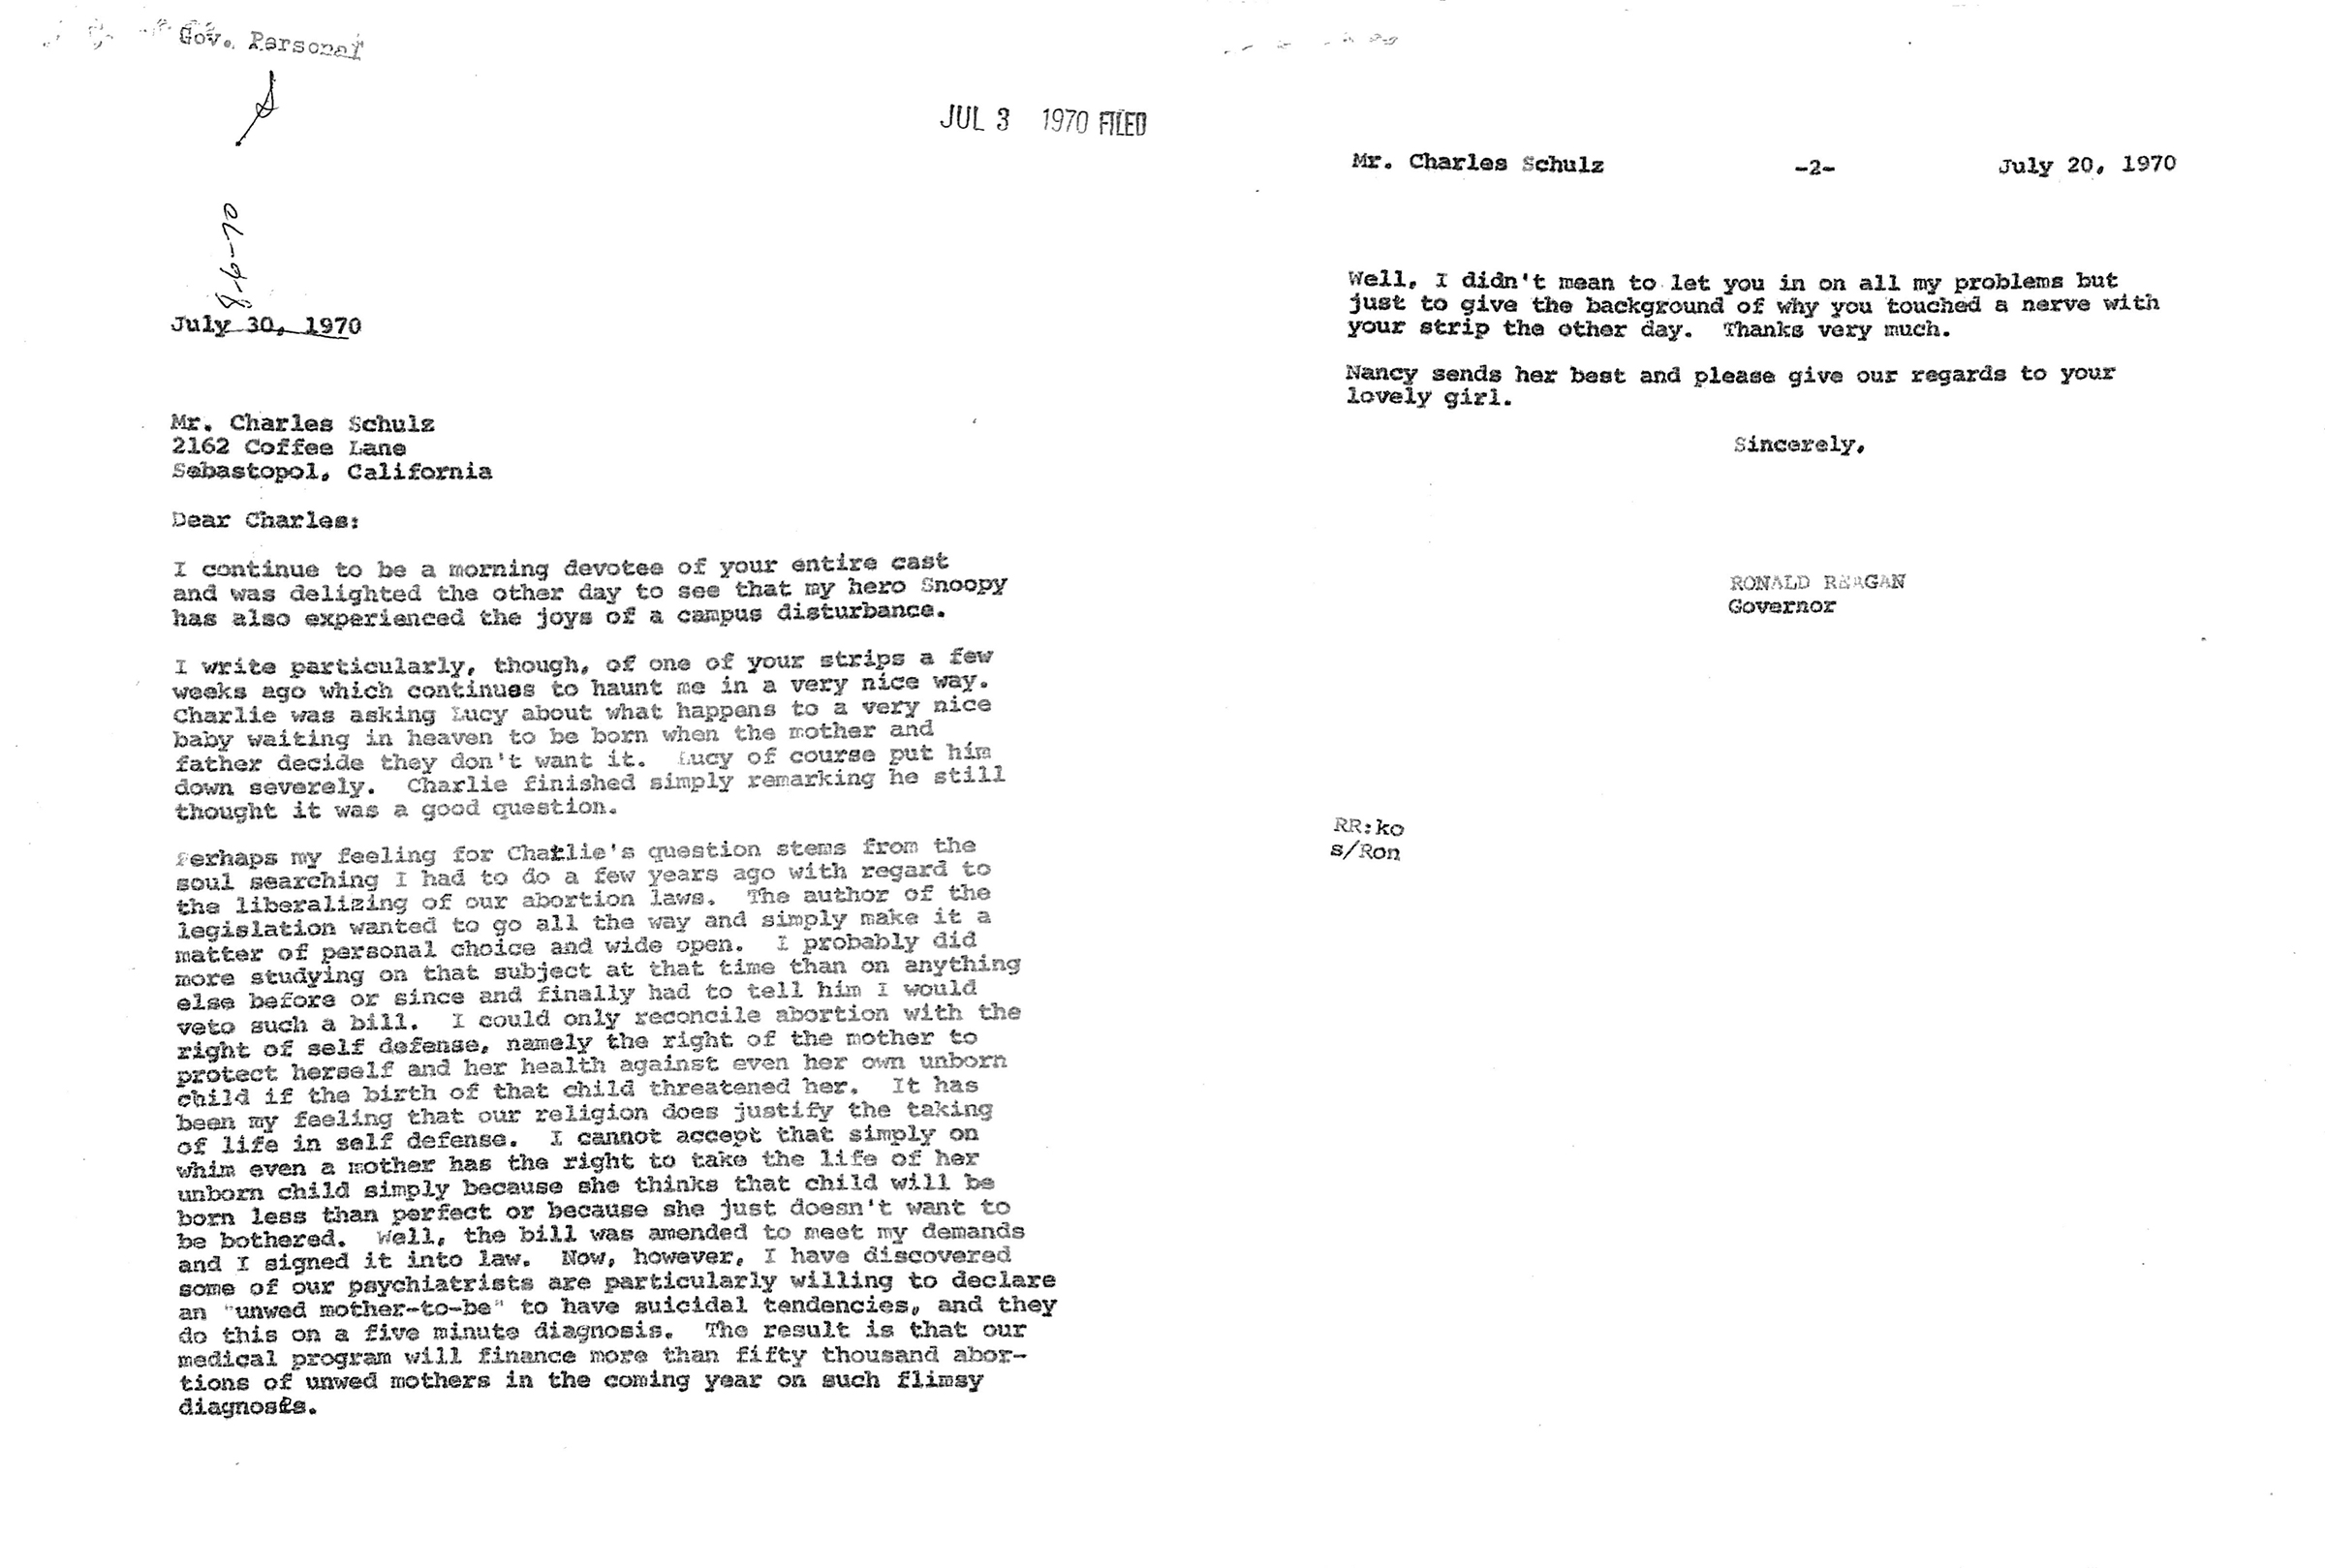 A letter from Governor Ronald Reagan to Charles M. Schulz, dated July 30, 1970